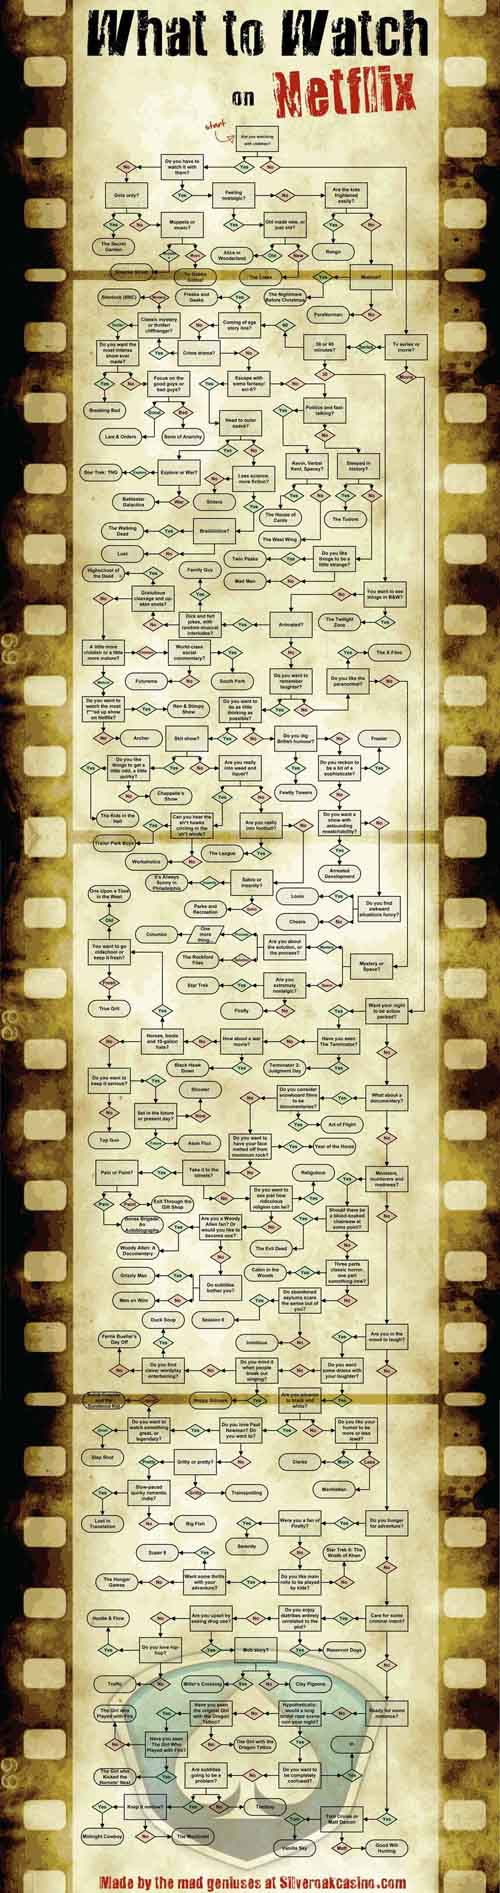 What to Watch on Netflix Flowchart - SlightlyQualified.com